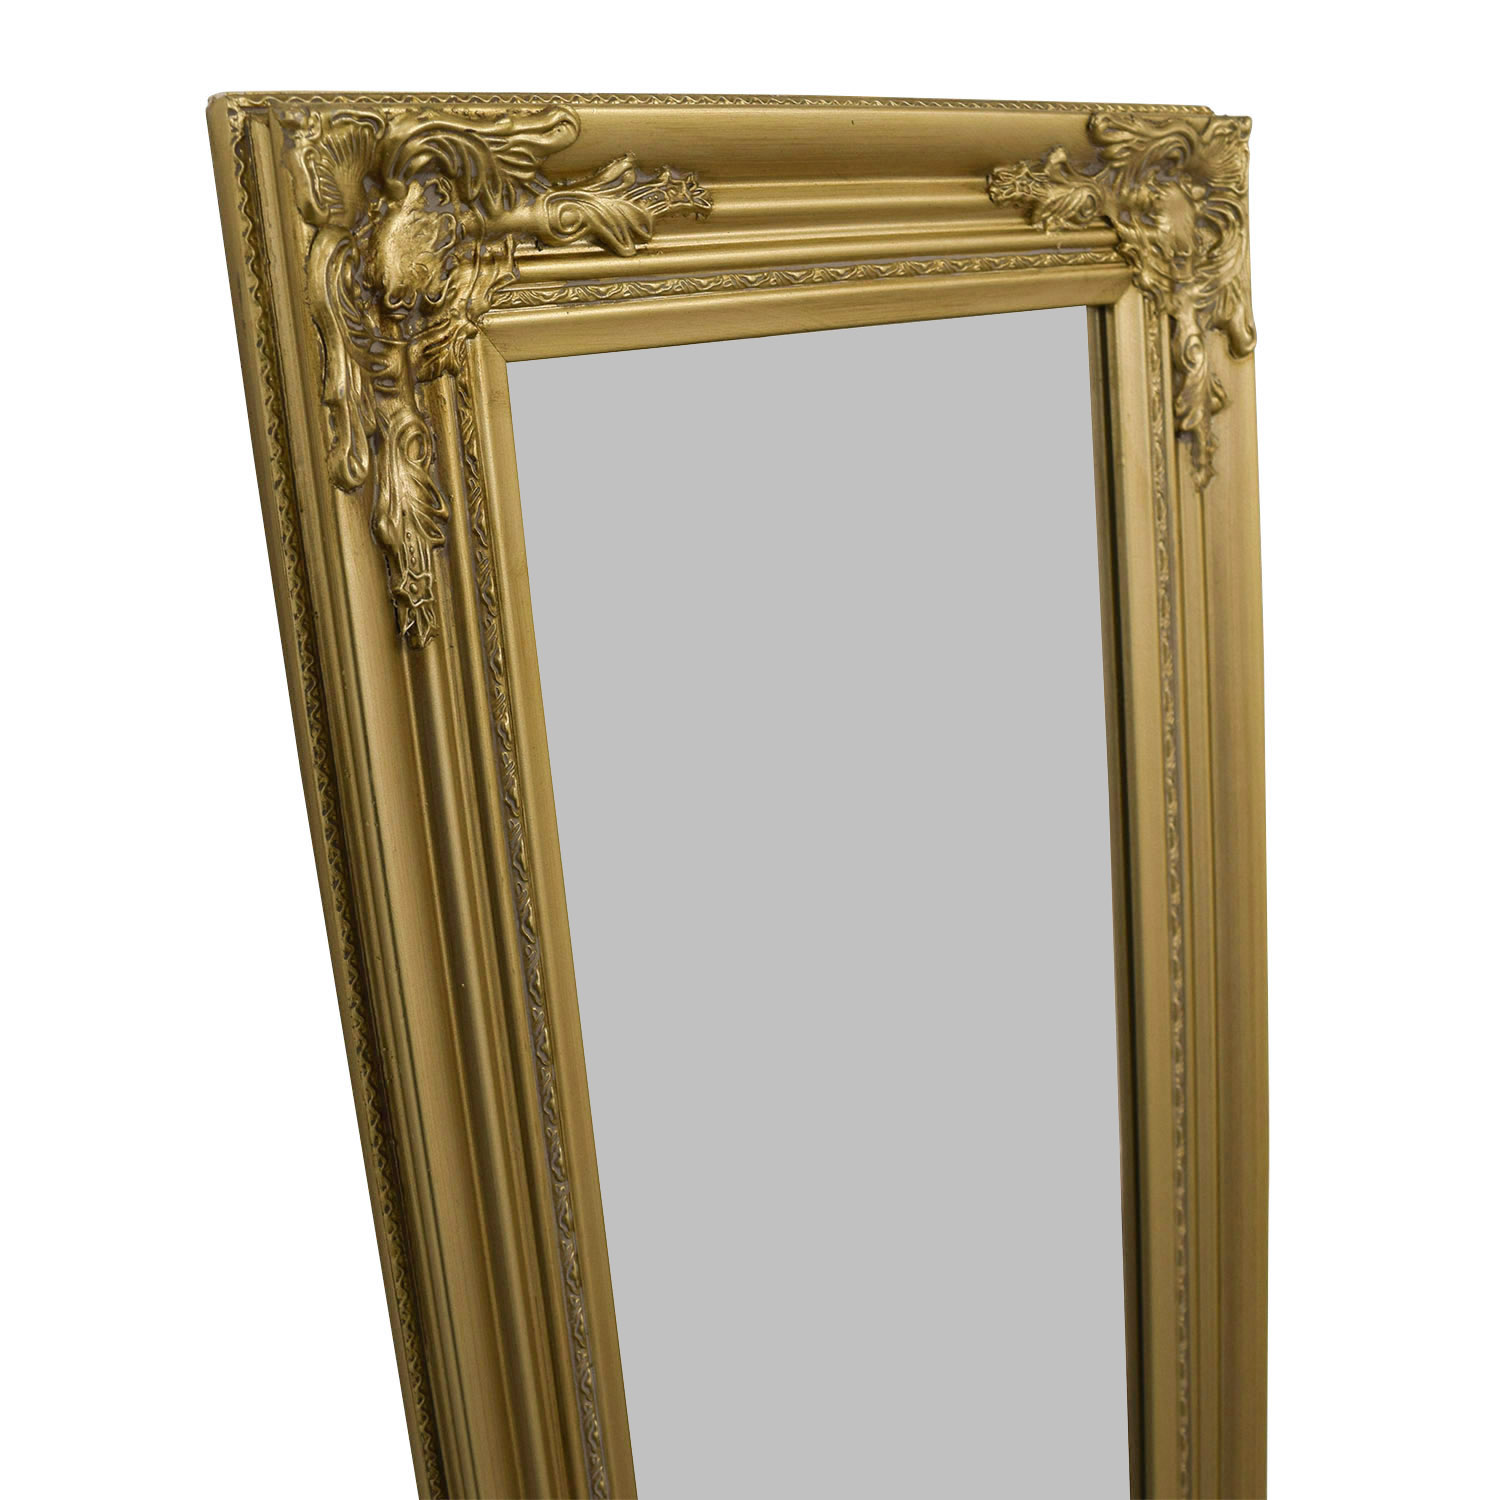 Full Length Ornate Gold Mirror Gold